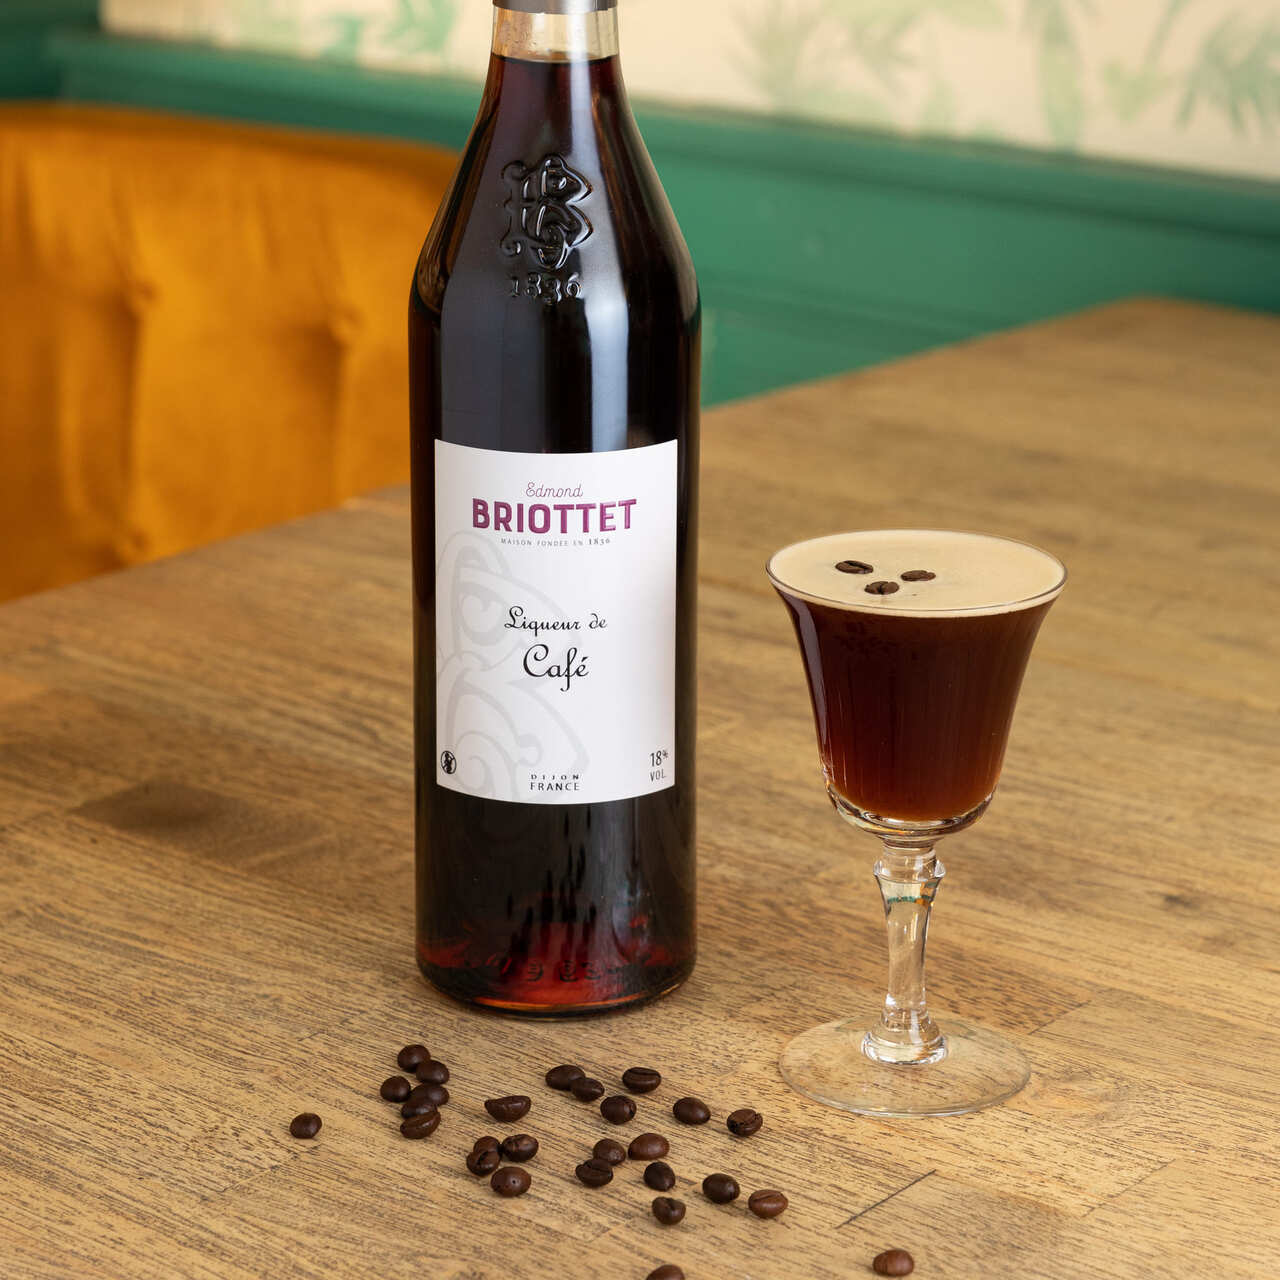 briottet-cocktail-espresso-martini-cafe-home